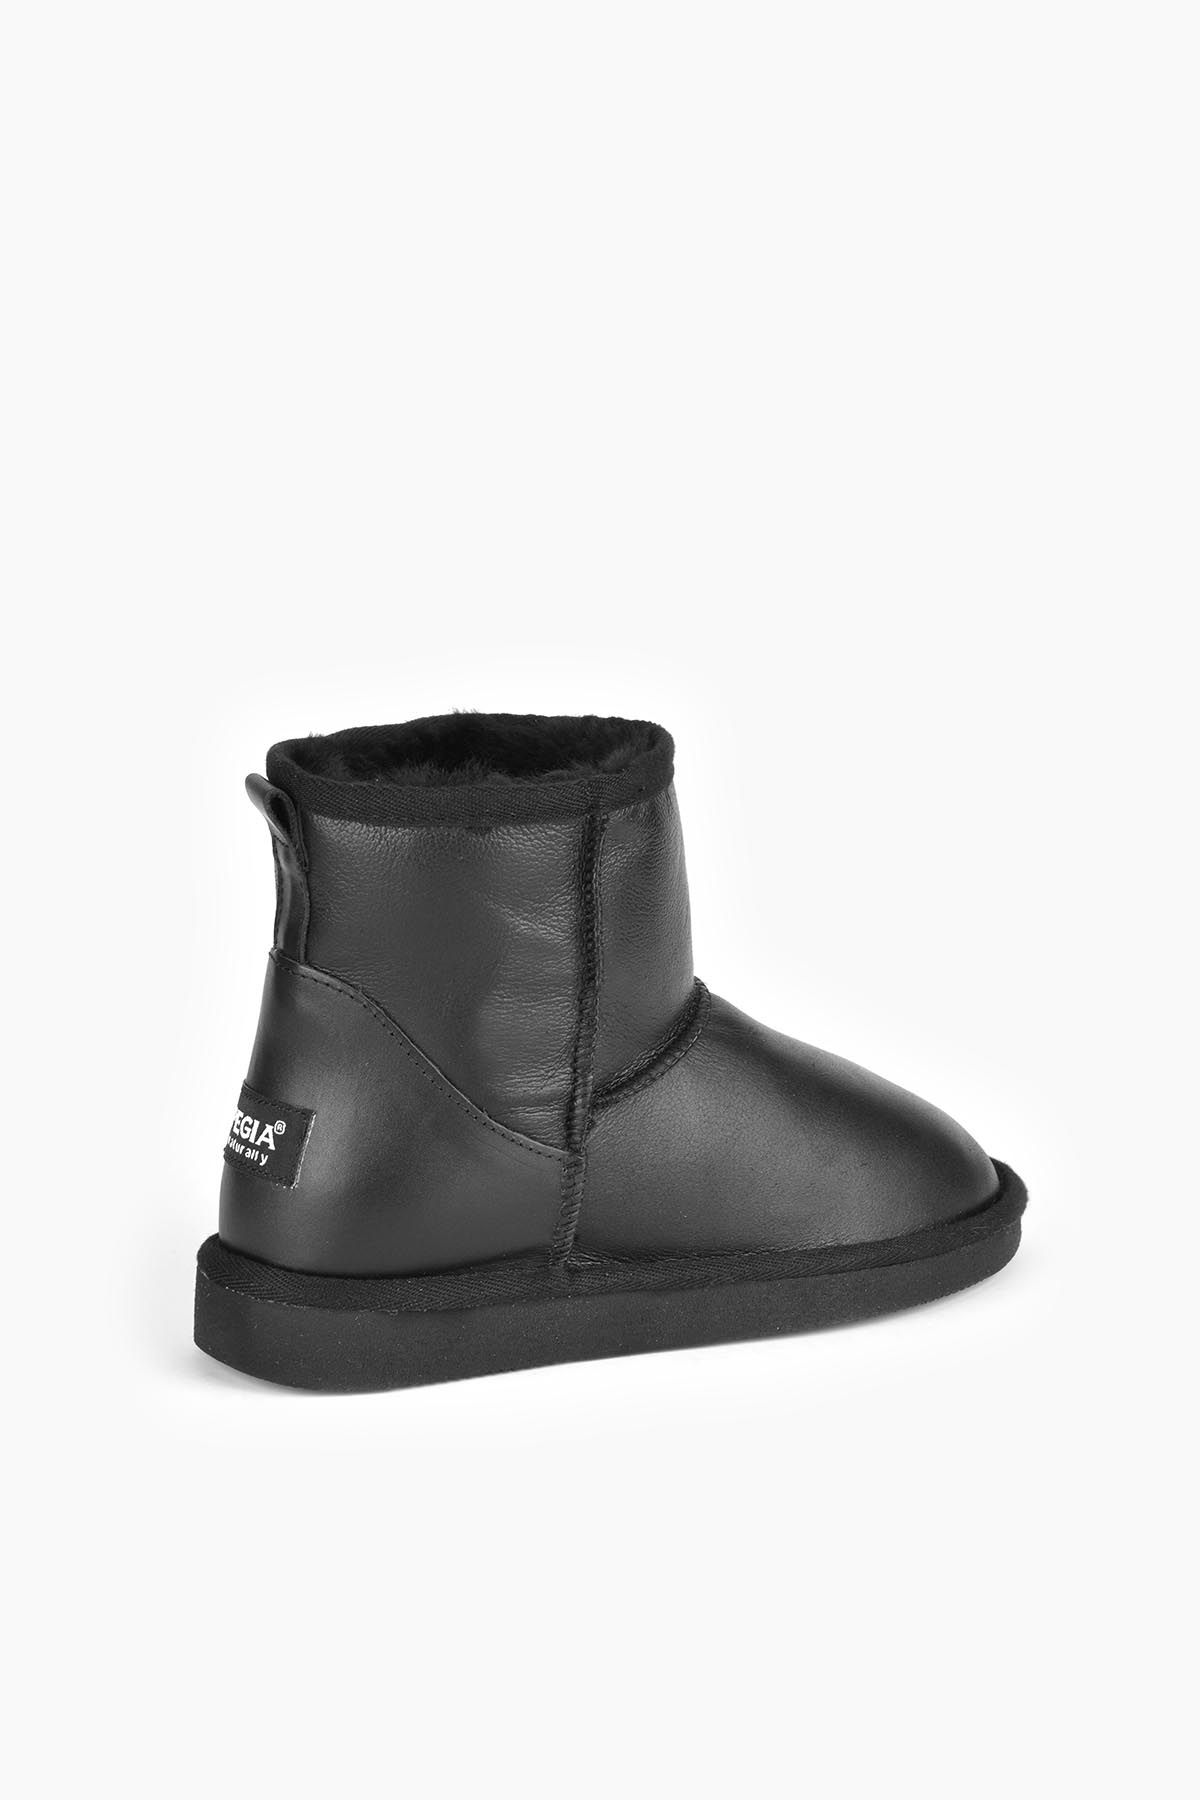 Pegia Short Women Boots From Genuine Leather And Sheepskin Fur 191022 Black